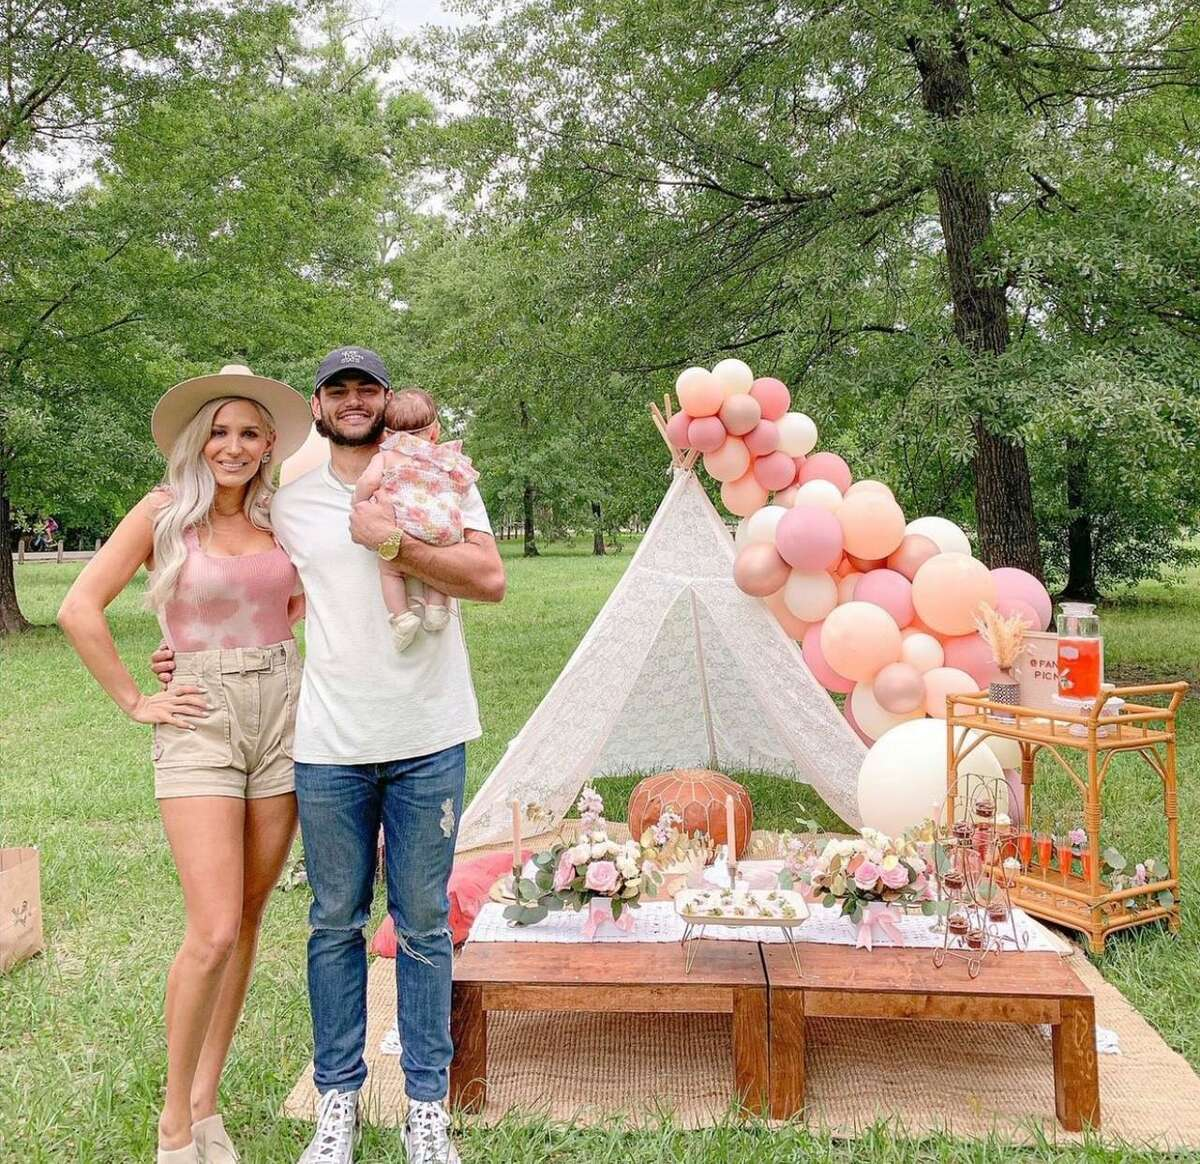 Kara and Lance McCullers are clients of Fancy Picnics, the business that Brenda Vilchis launched on Instagram at age 22 while a sophomore studying hospitality management at the University of Houston.